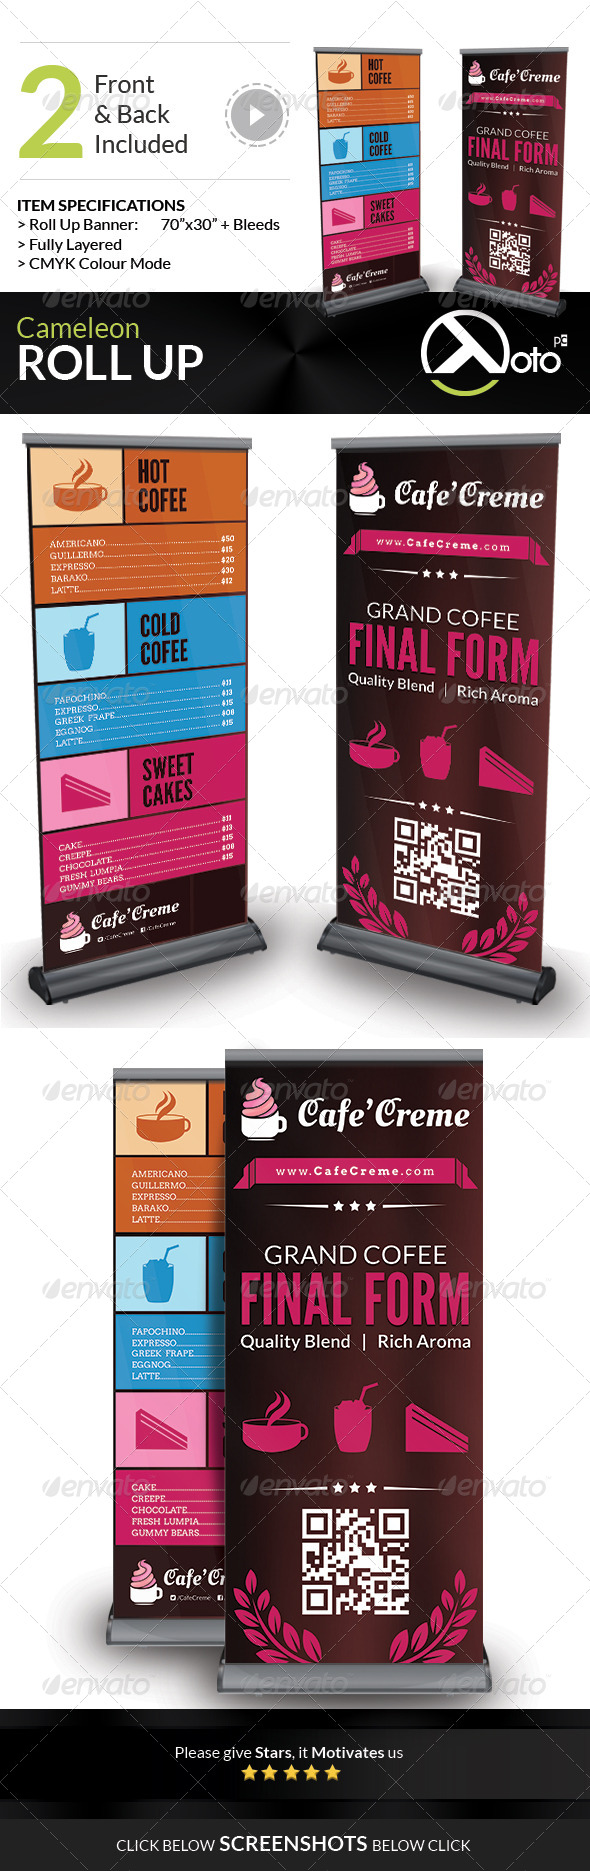 GraphicRiver Cafe Creme Roll Up Banners 6766910